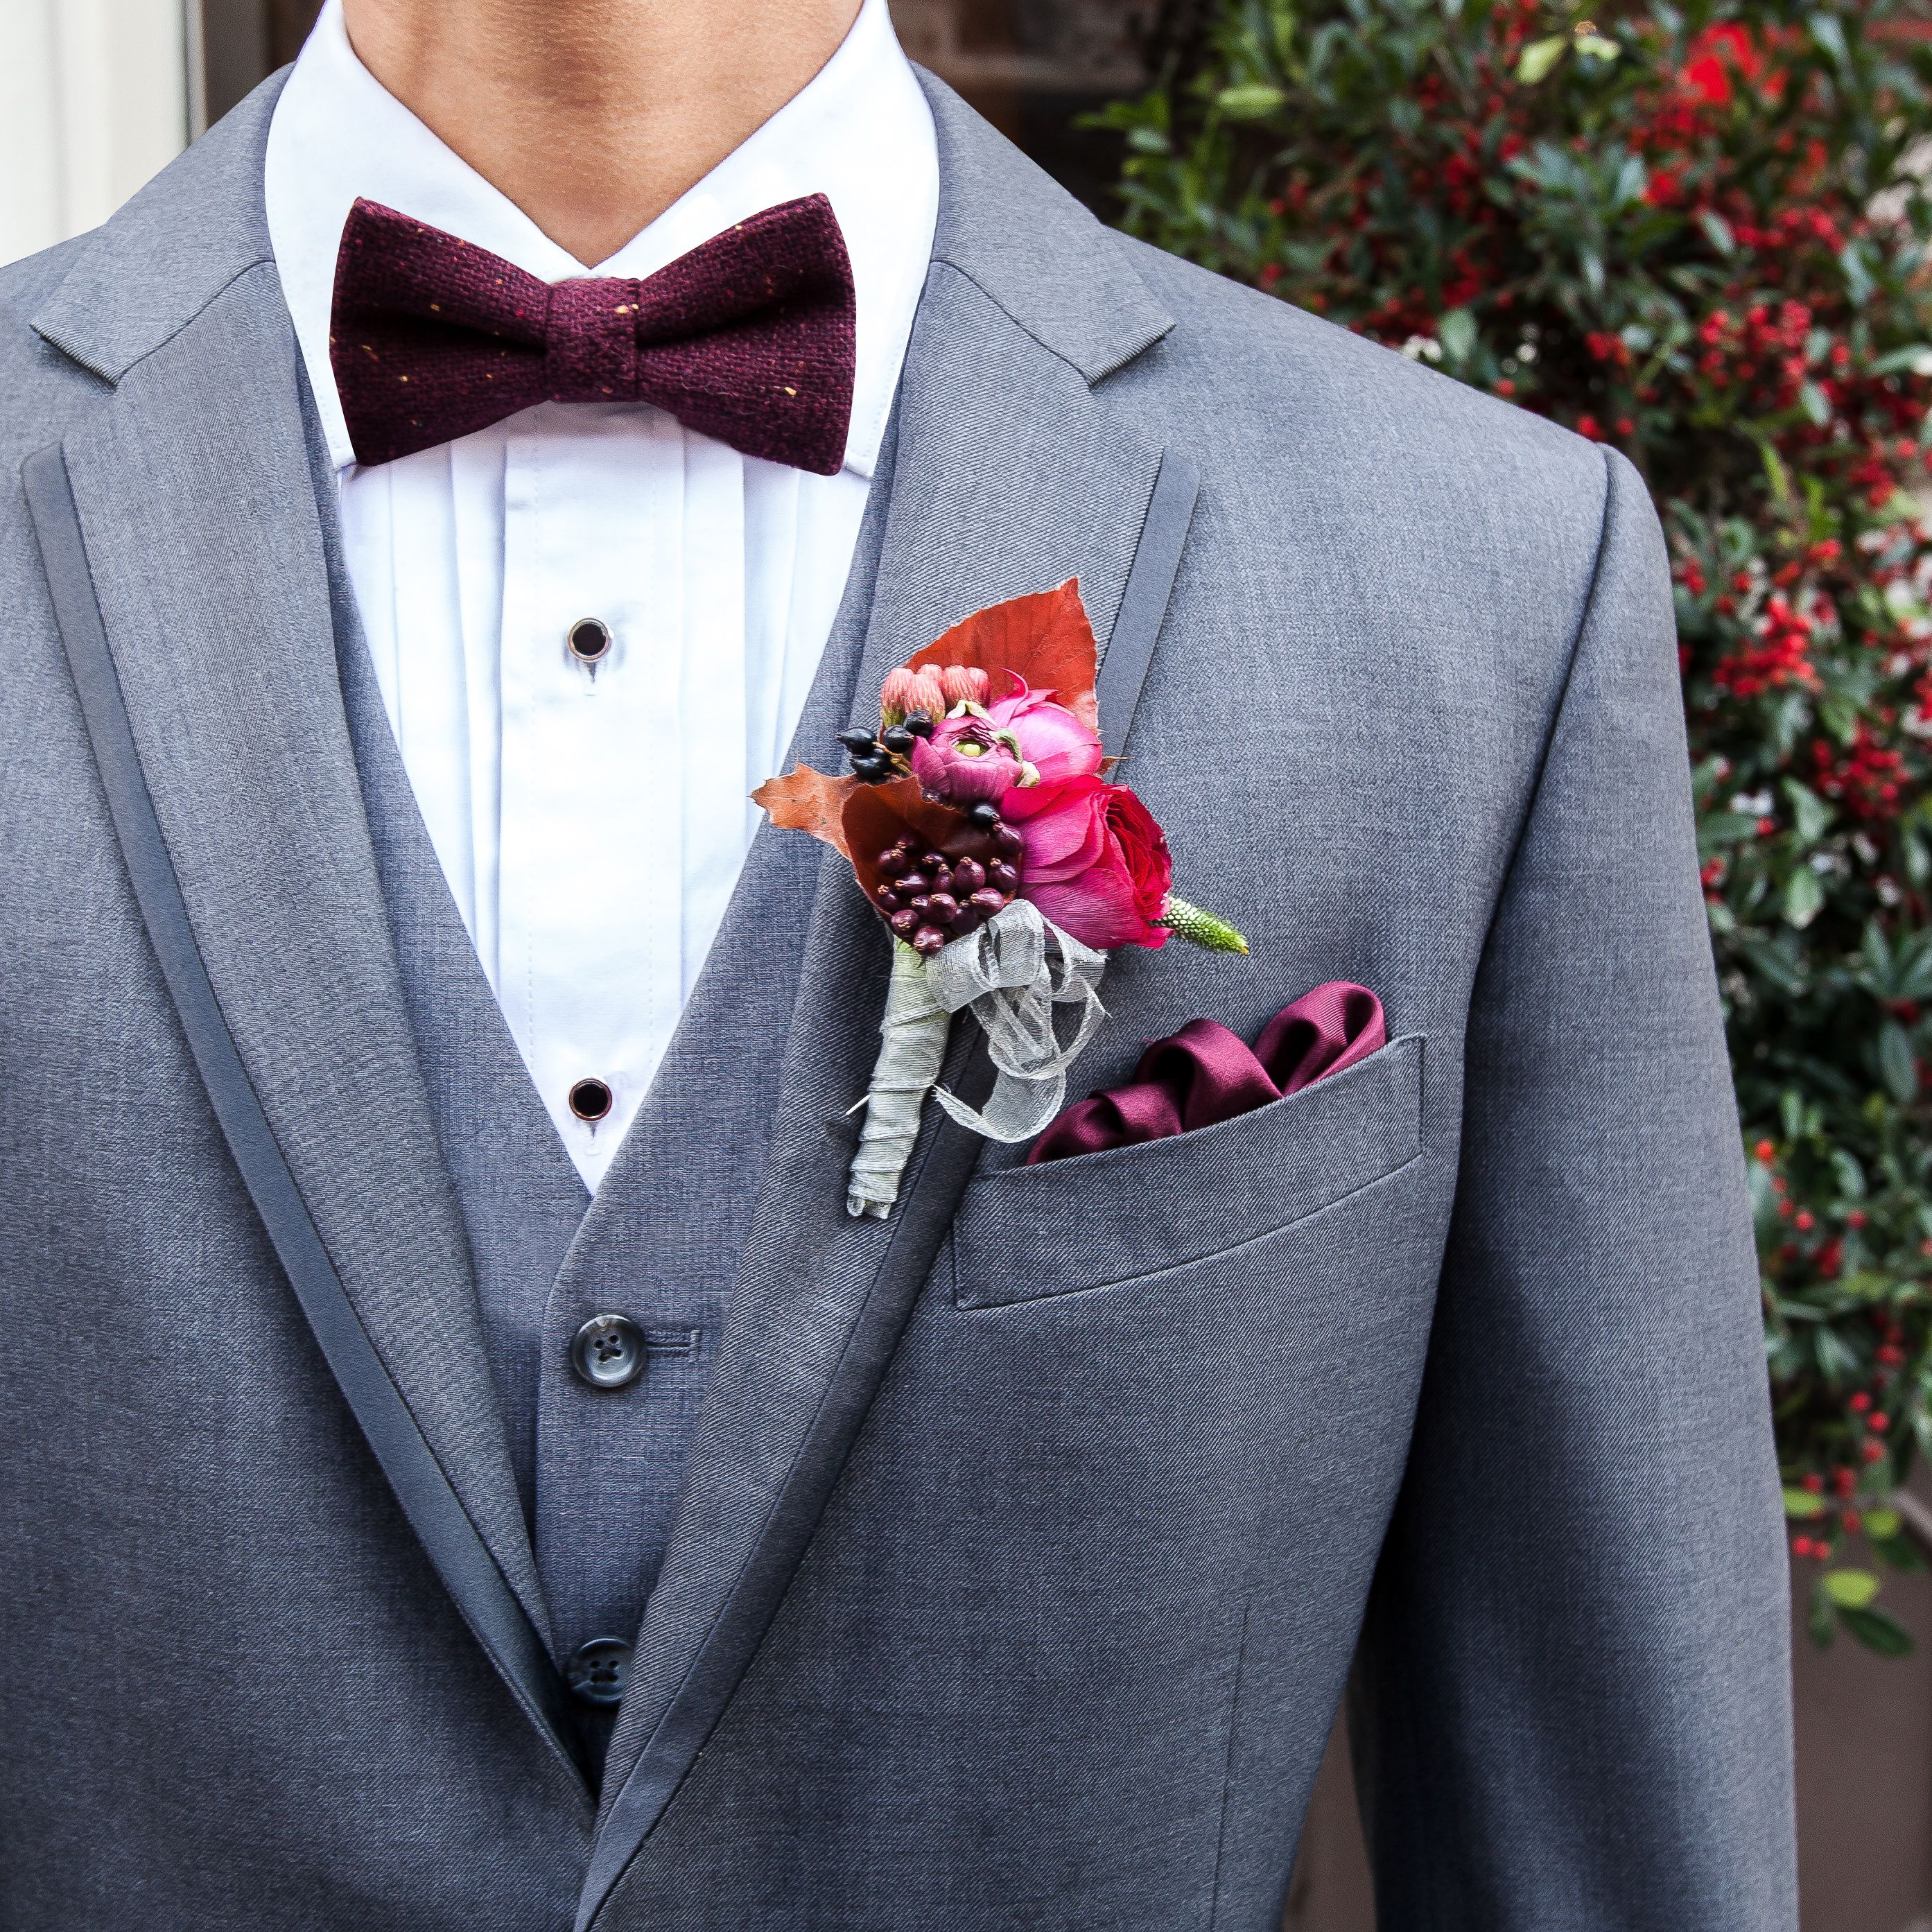 Add burgundy pieces for a bold winter wedding look.